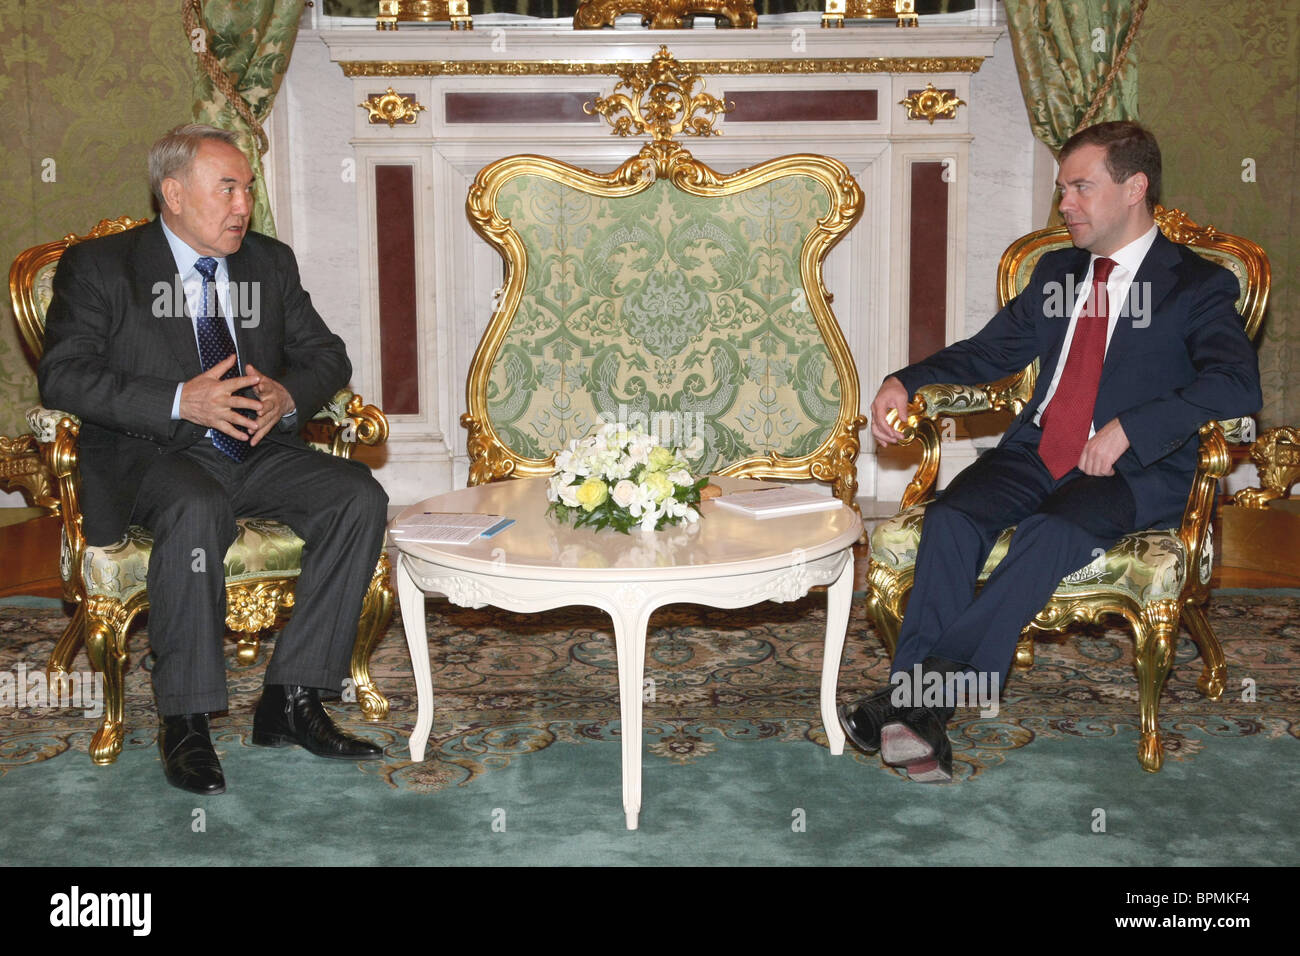 Leaders of Russia and Kazakhstan meet for talks - Stock Image